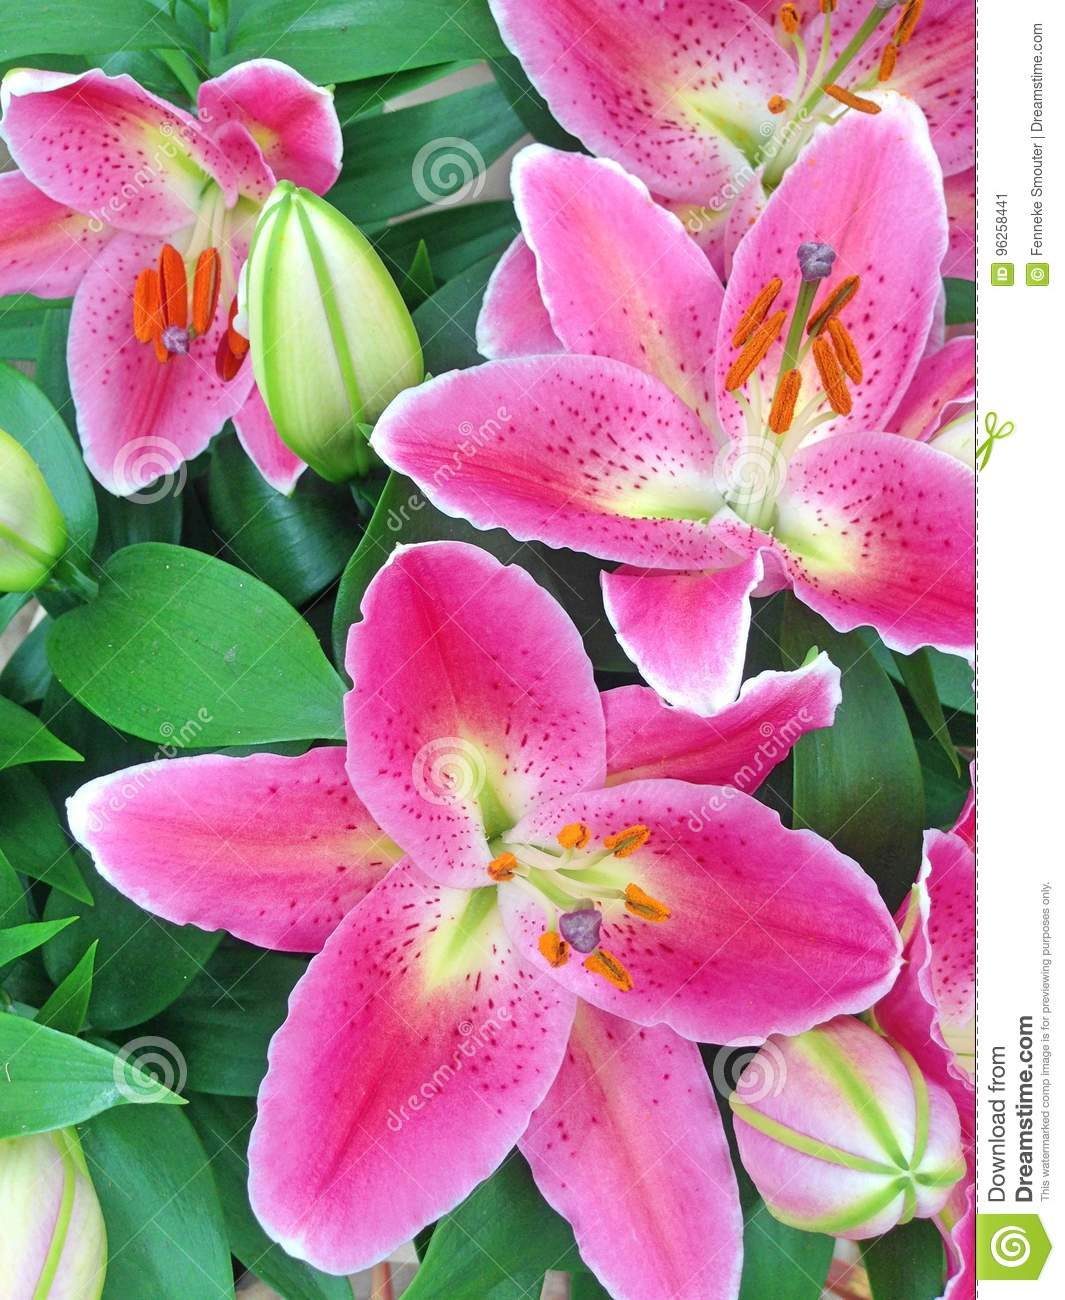 Pink Oriental Lily Flowers Stock Image Image Of Blossom 96258441